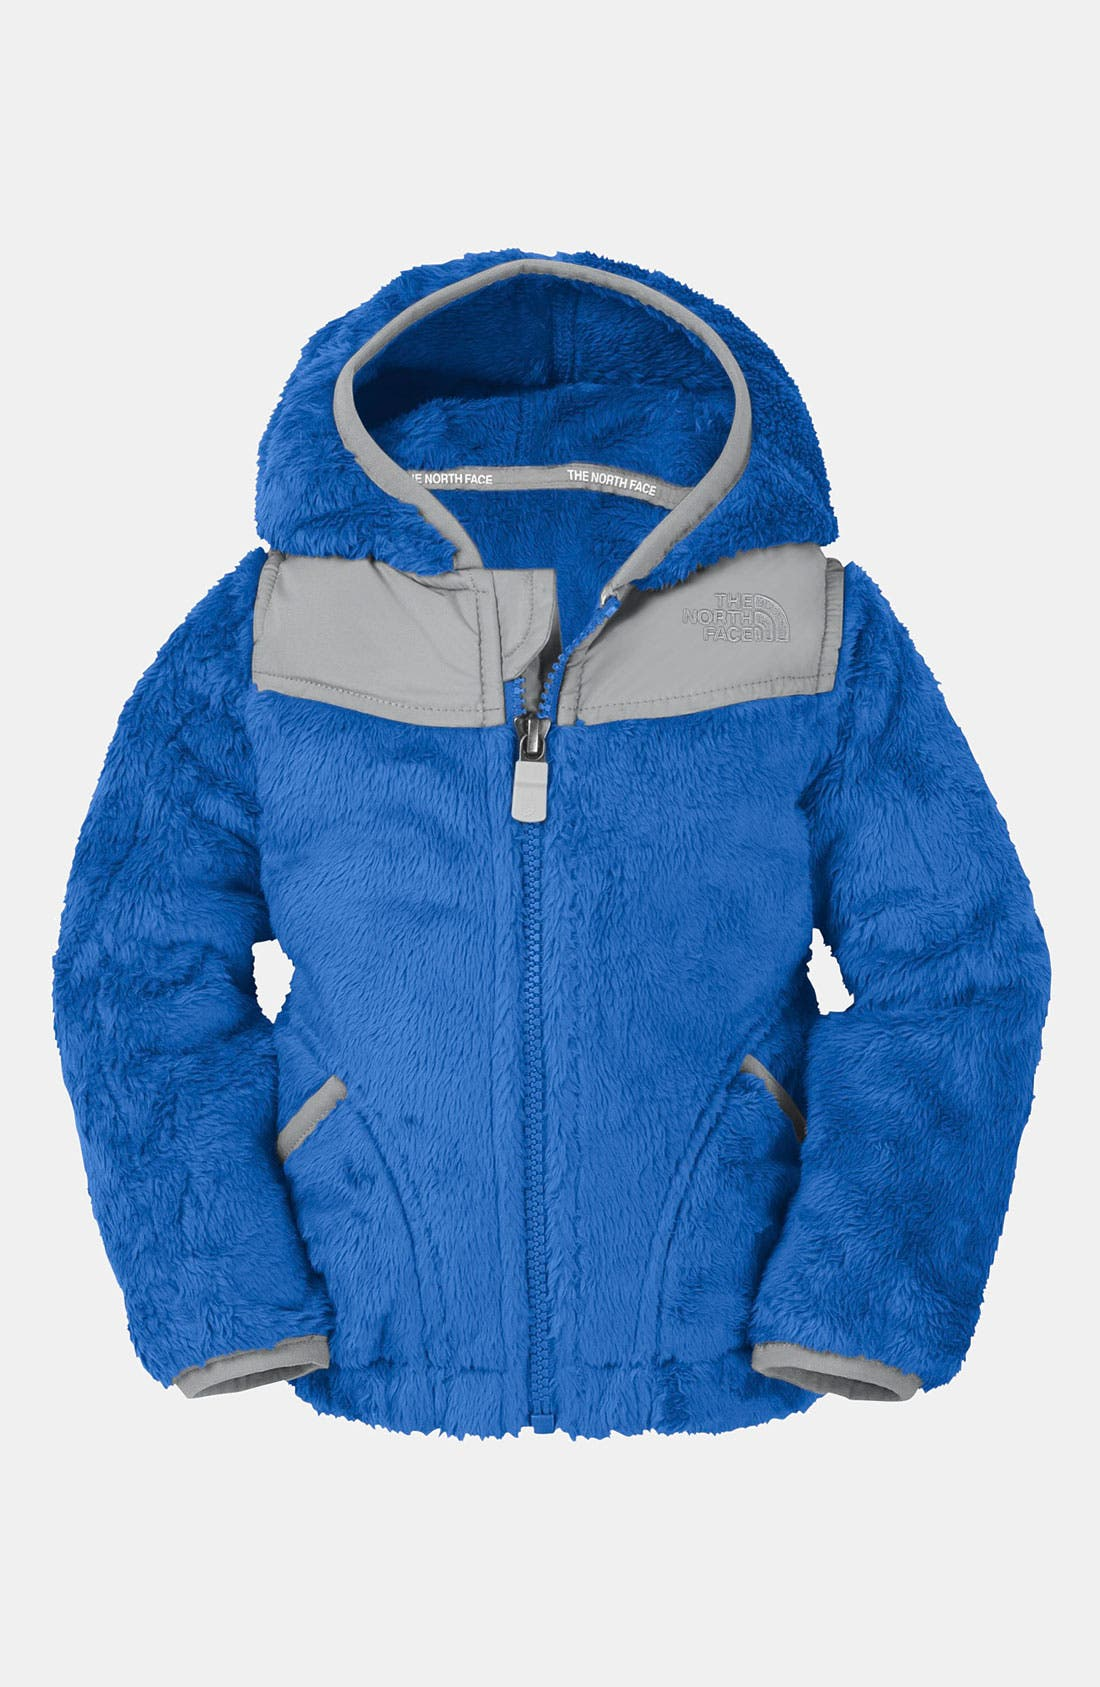 Main Image - The North Face 'Oso' Hoodie (Baby)